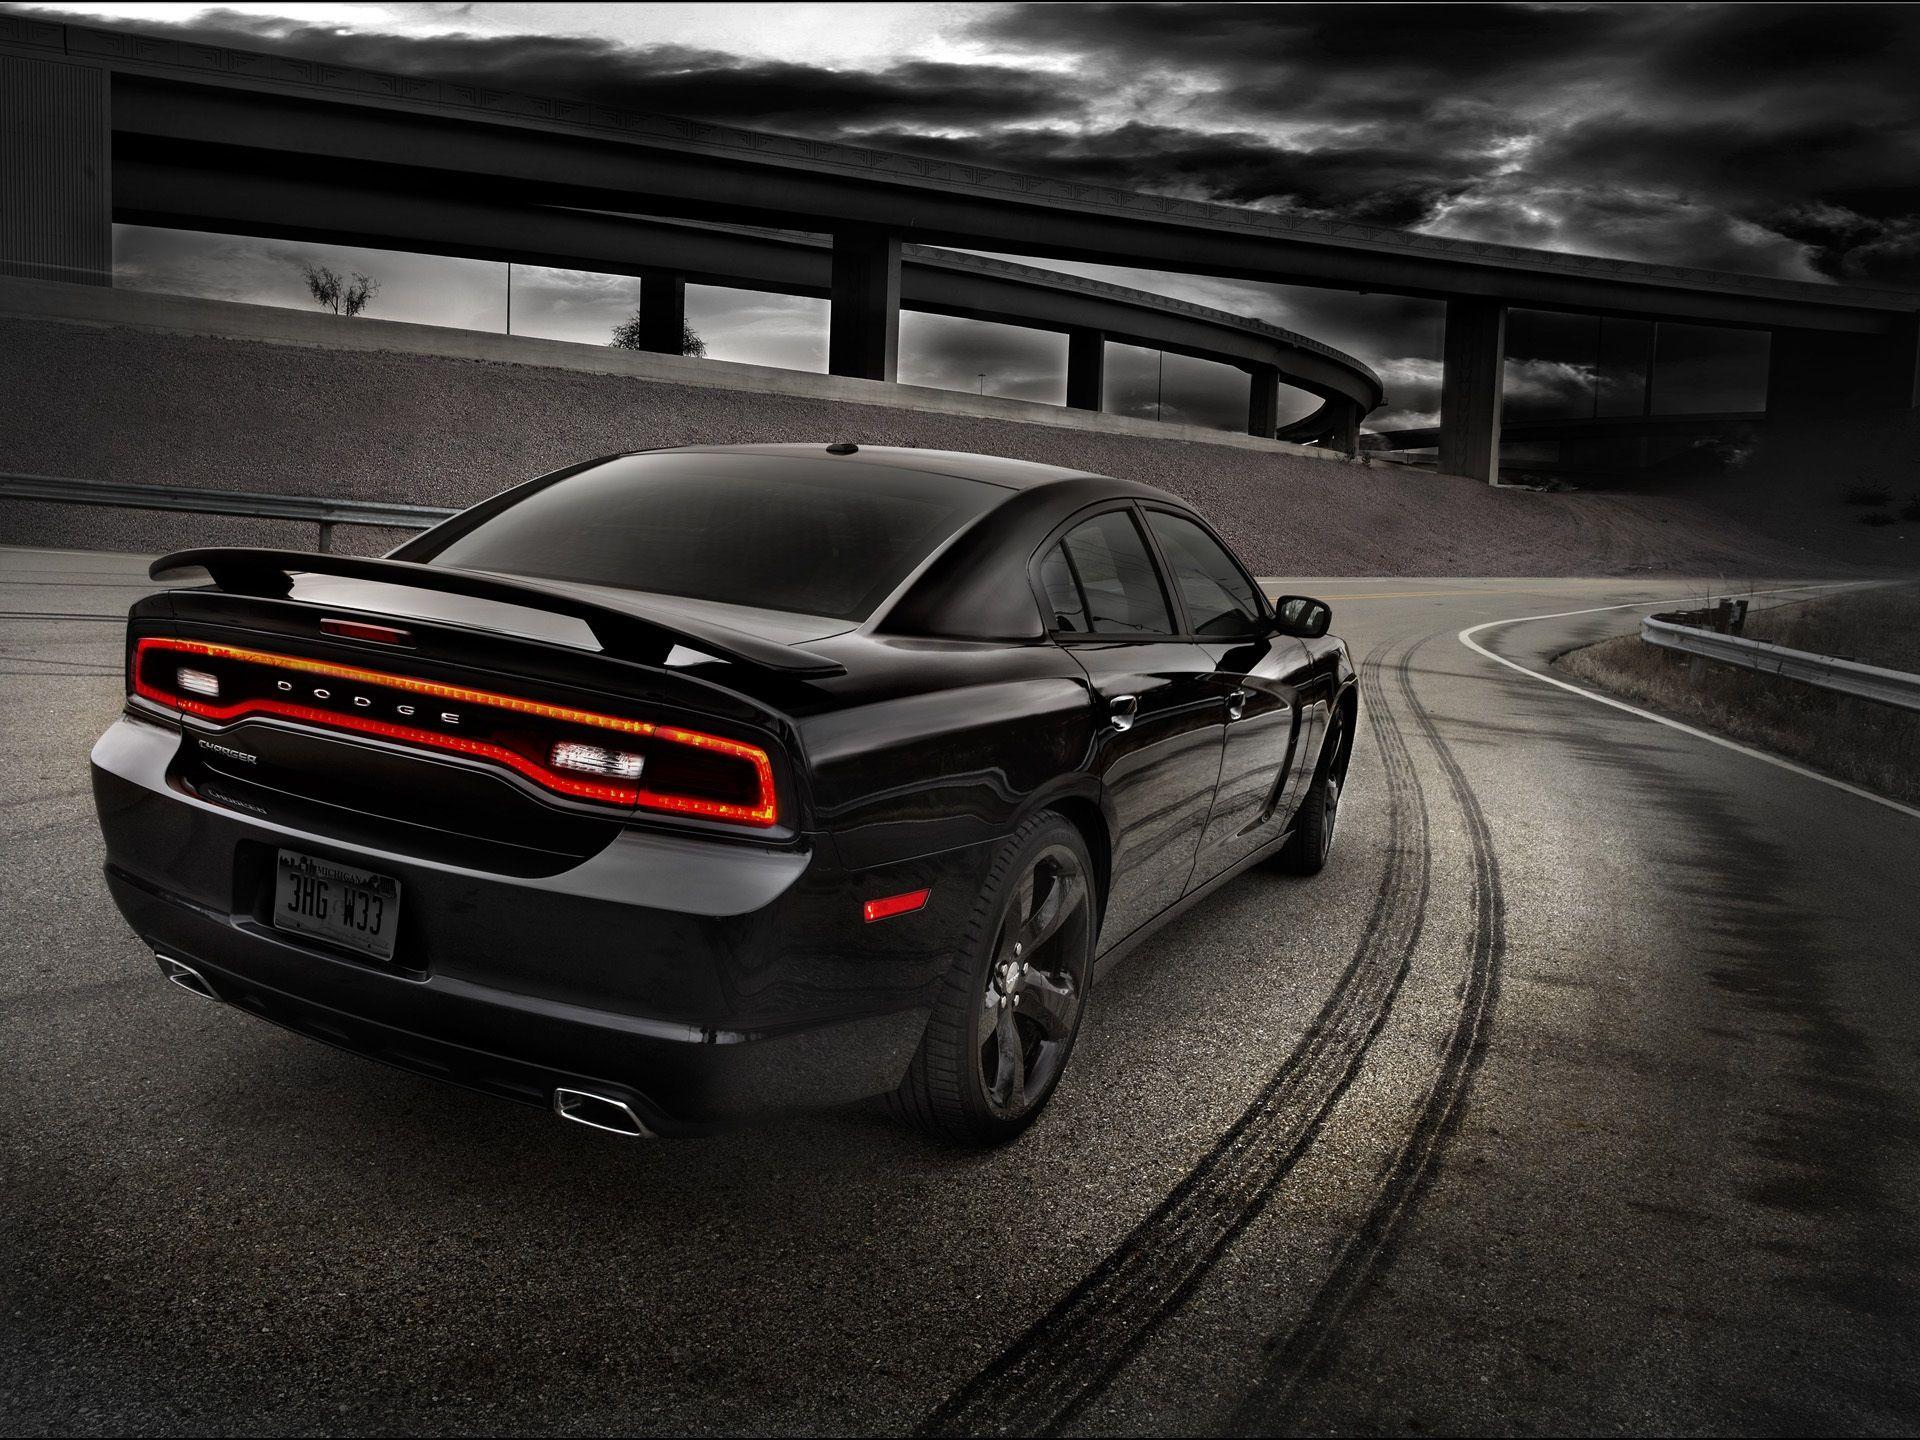 Black Dodge car rear view Full HD wallpapers